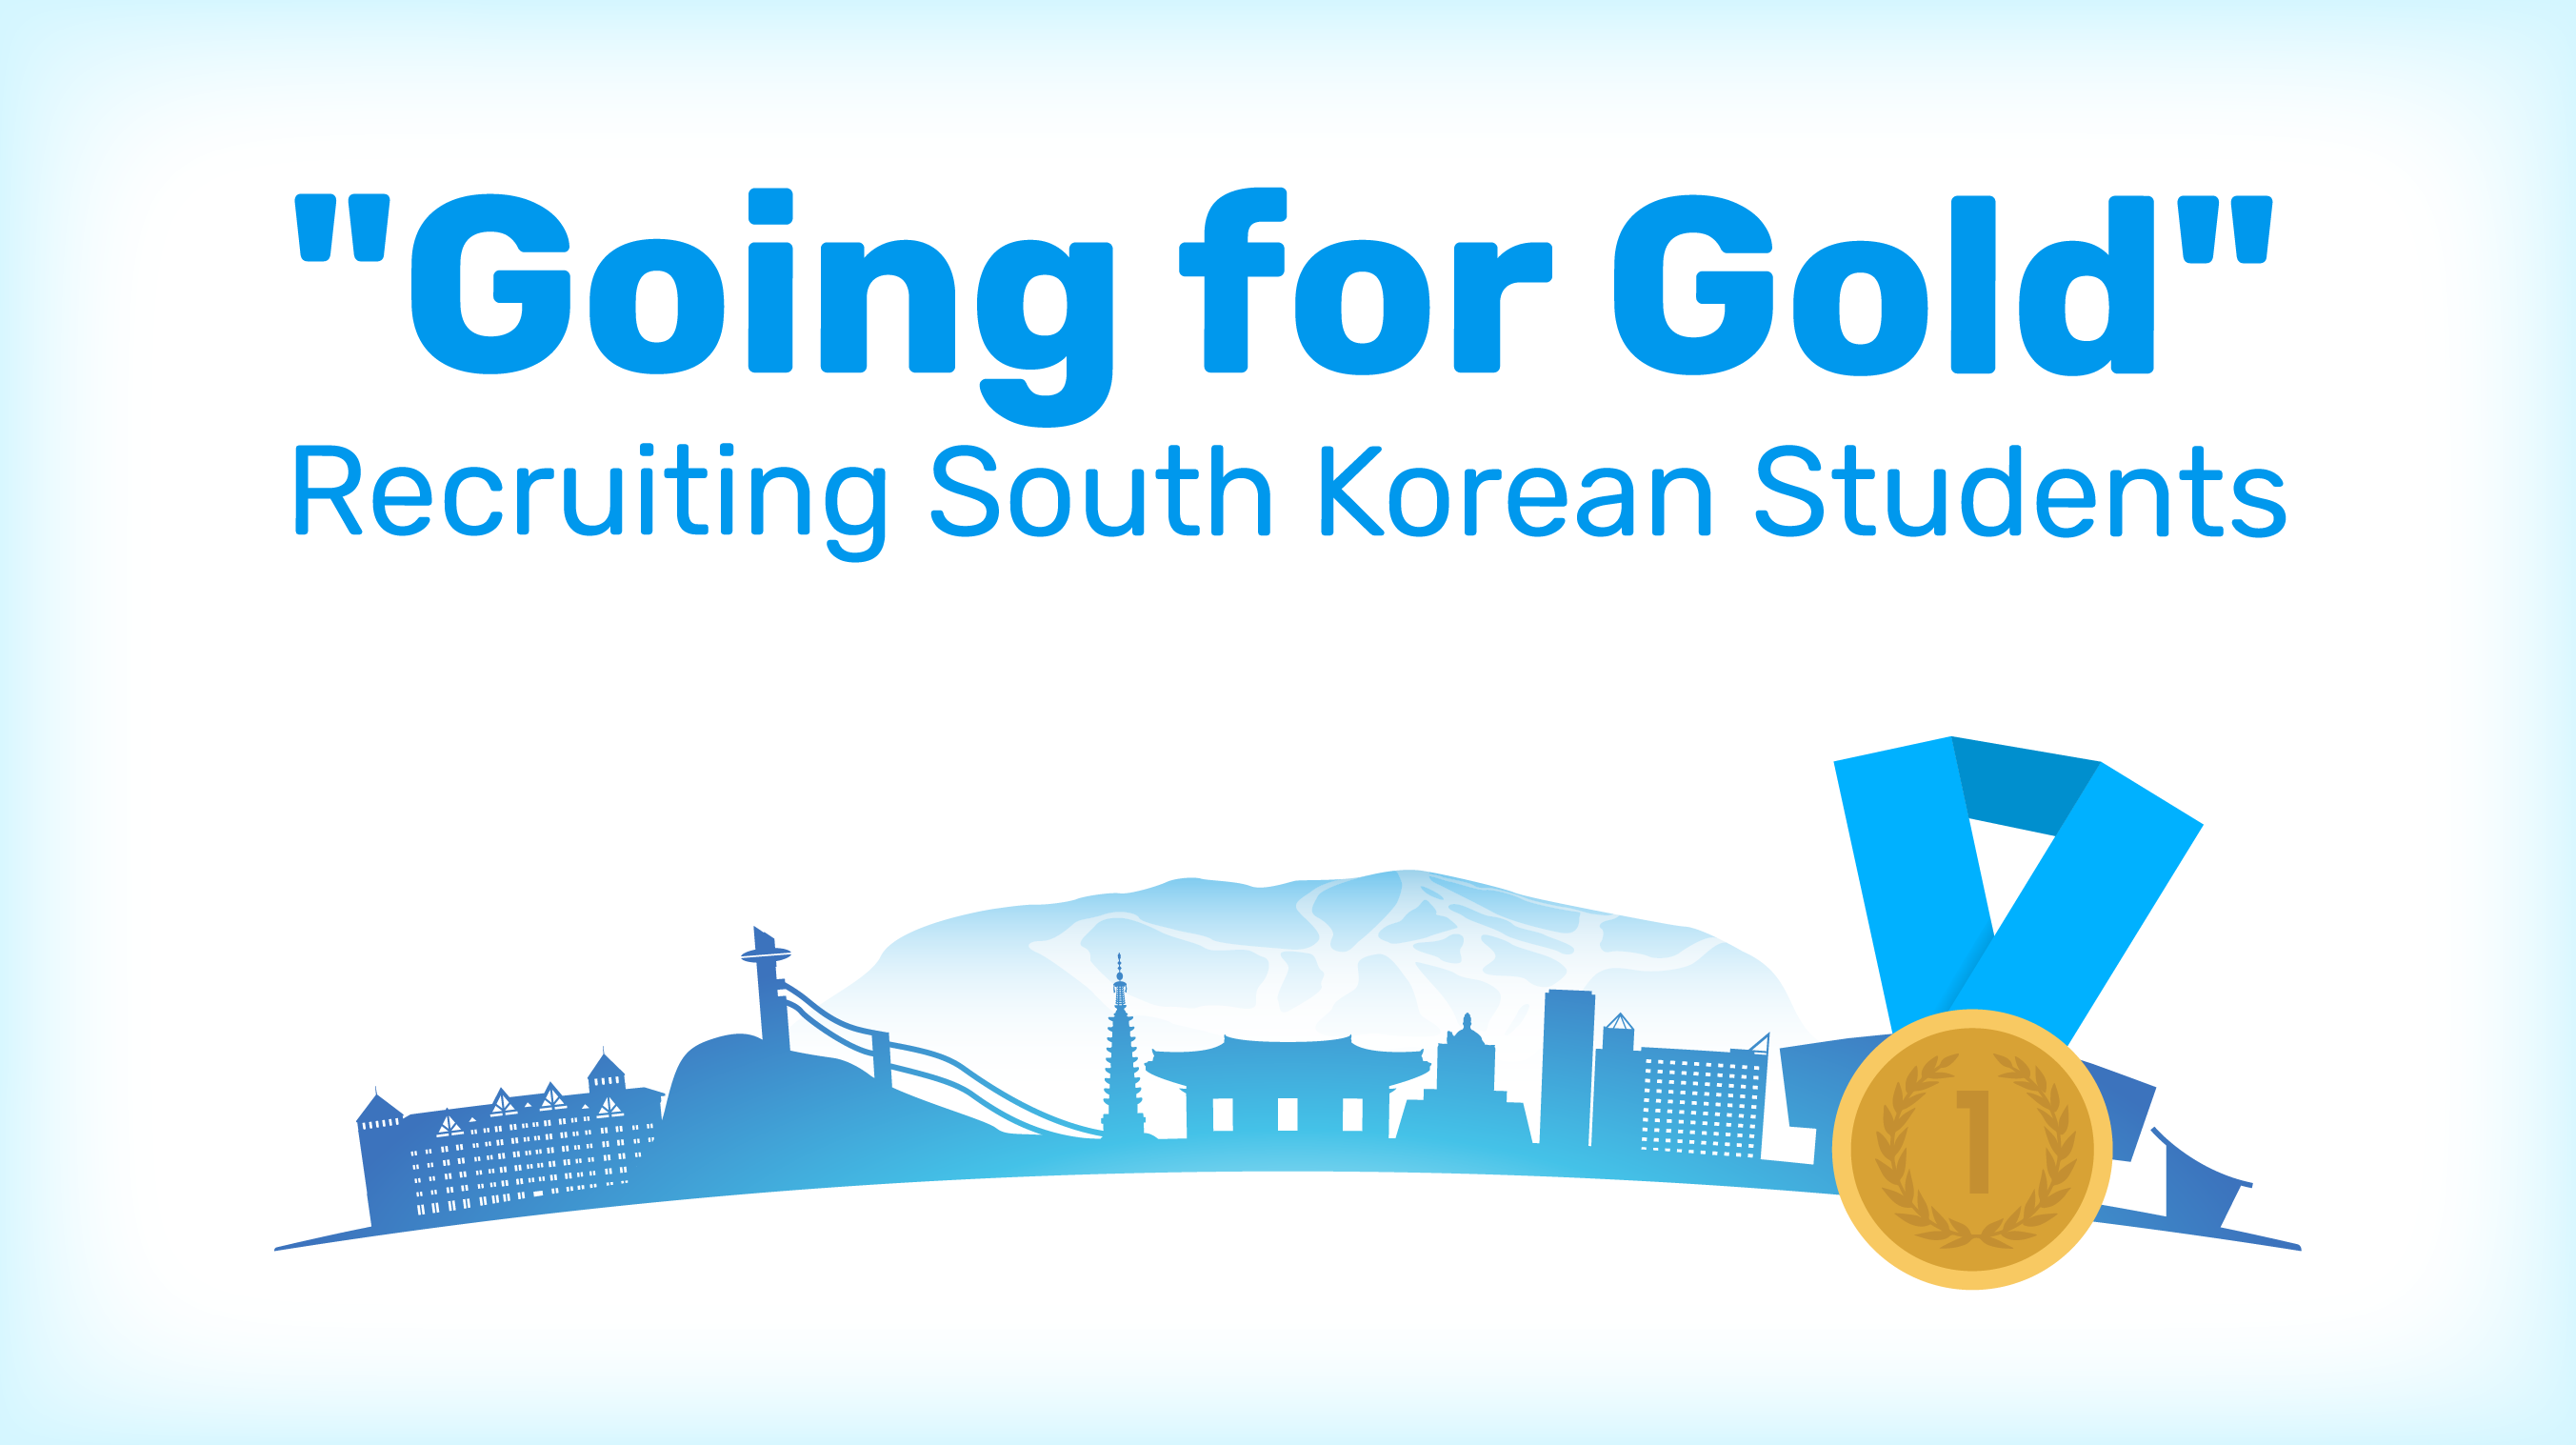 Going for Gold: Recruiting South Korean Students